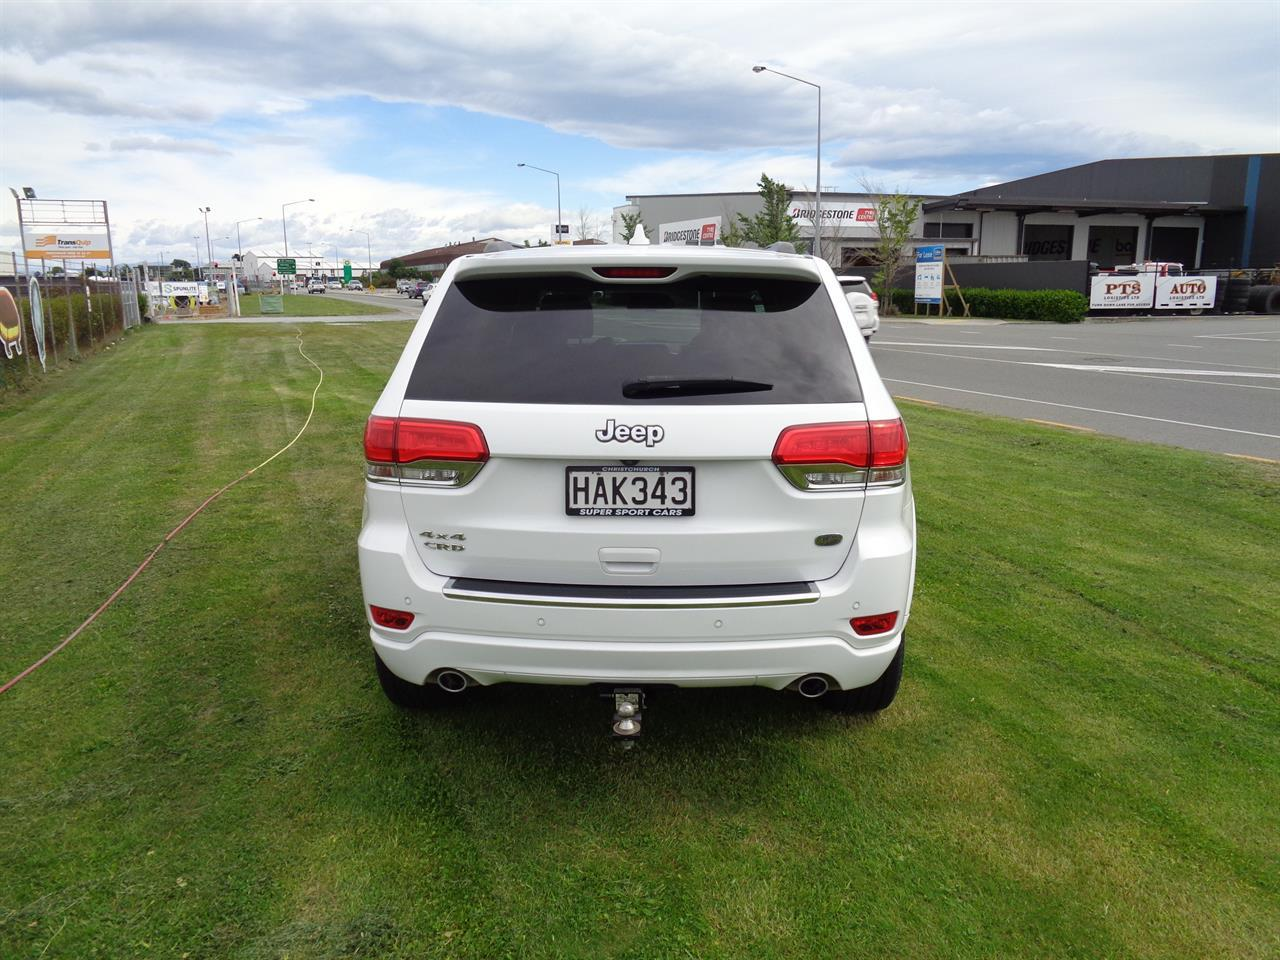 image-5, 2013 Jeep Grand Cherokee 3.0L V6 CRD OVERLAND at Christchurch